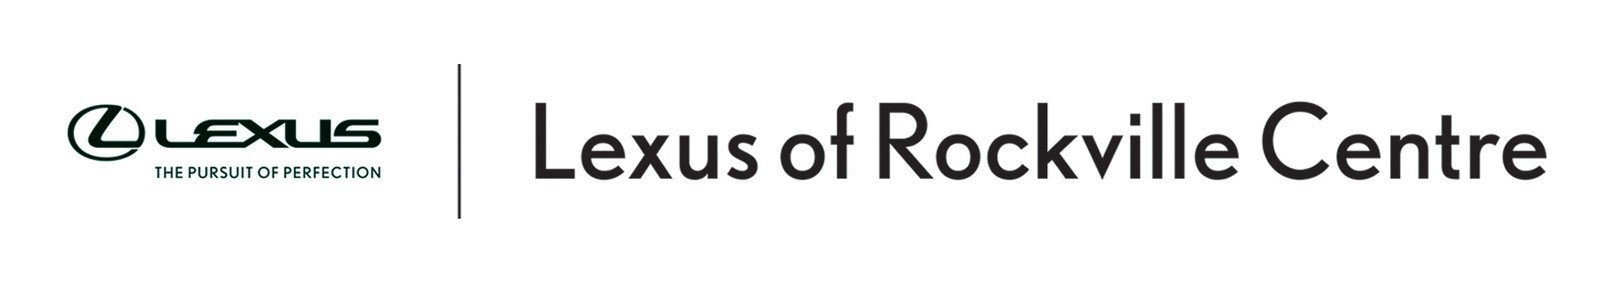 Lexus of Rockville Centre dealership logo